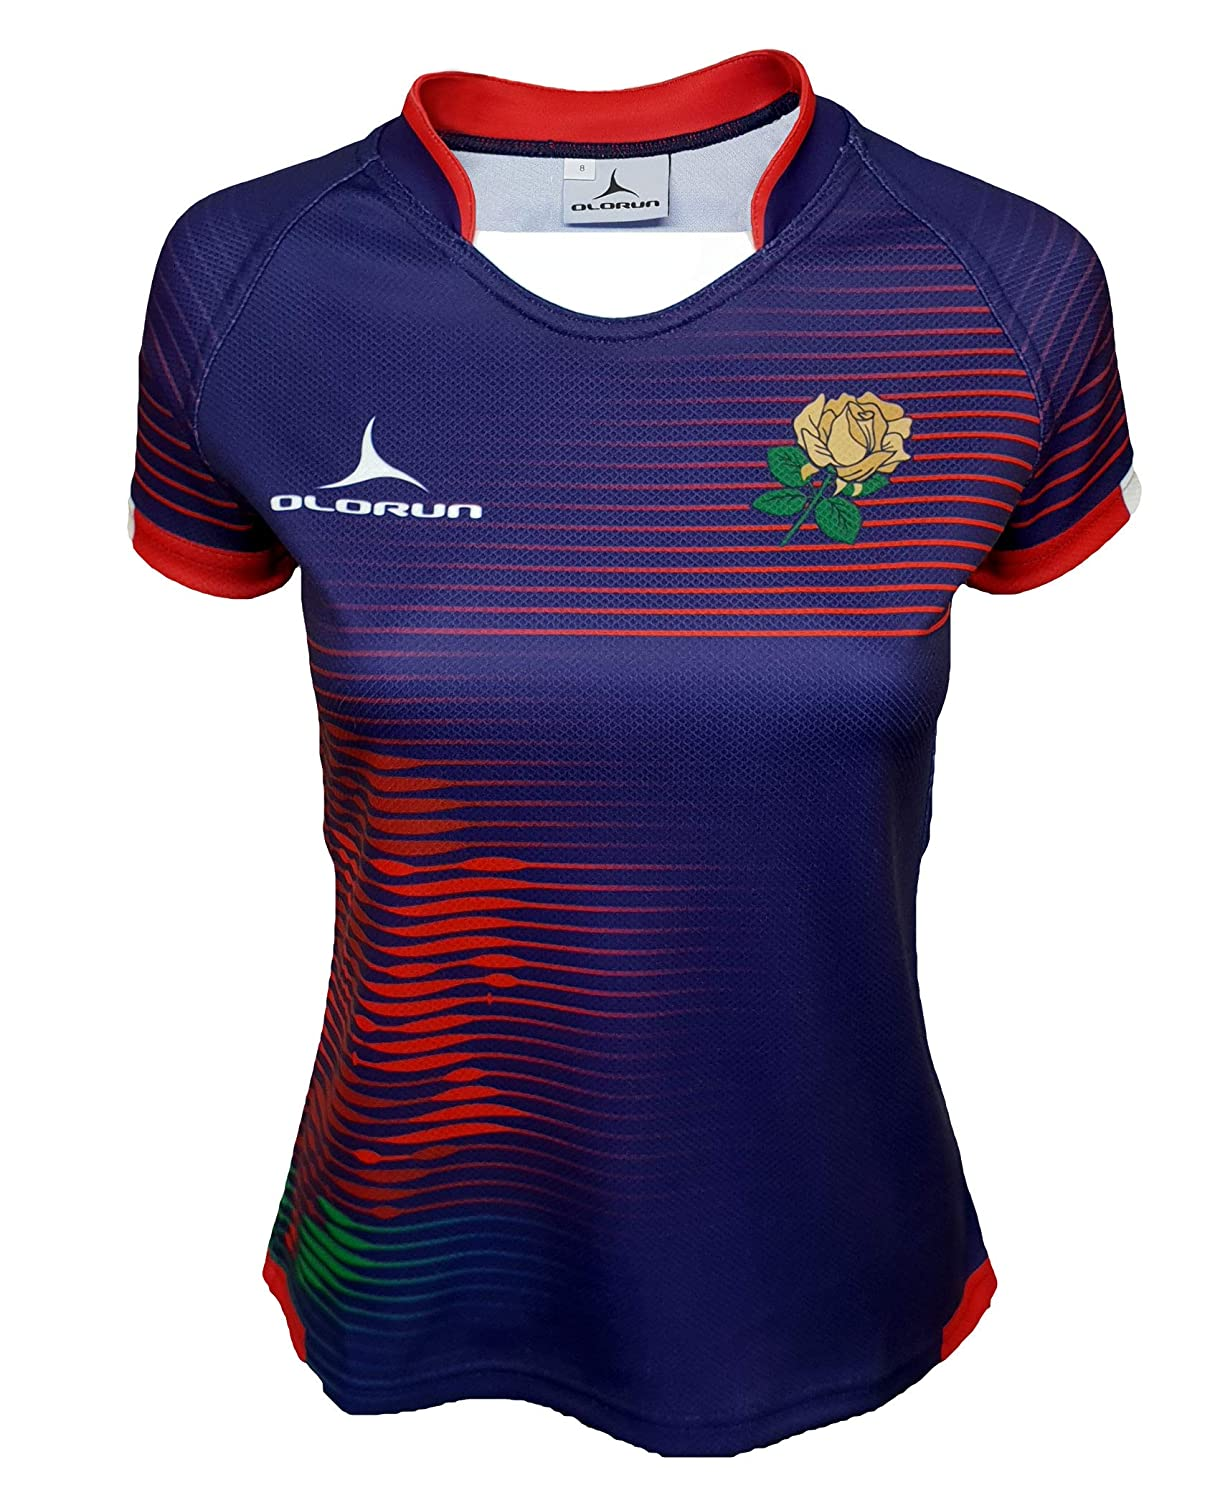 0c35e7d7839 Olorun England Contour Home Nations Ladies Away Rugby Shirt 8-22: Amazon.co. uk: Sports & Outdoors